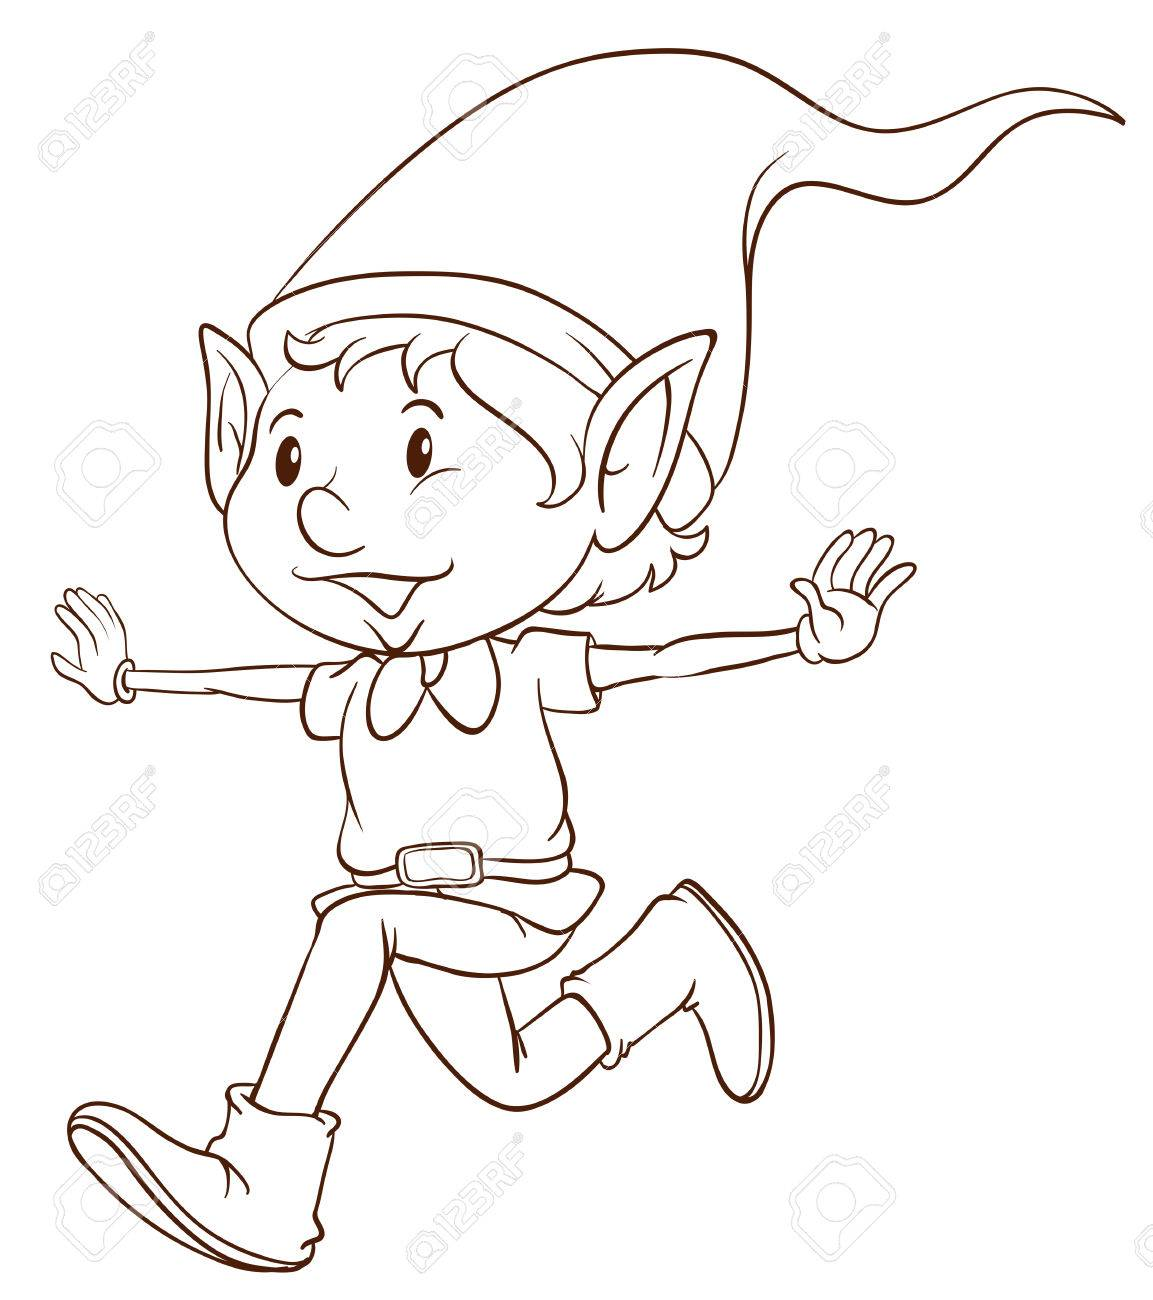 1153x1300 Illustration Of A Plain Drawing Of An Elf On A White Background